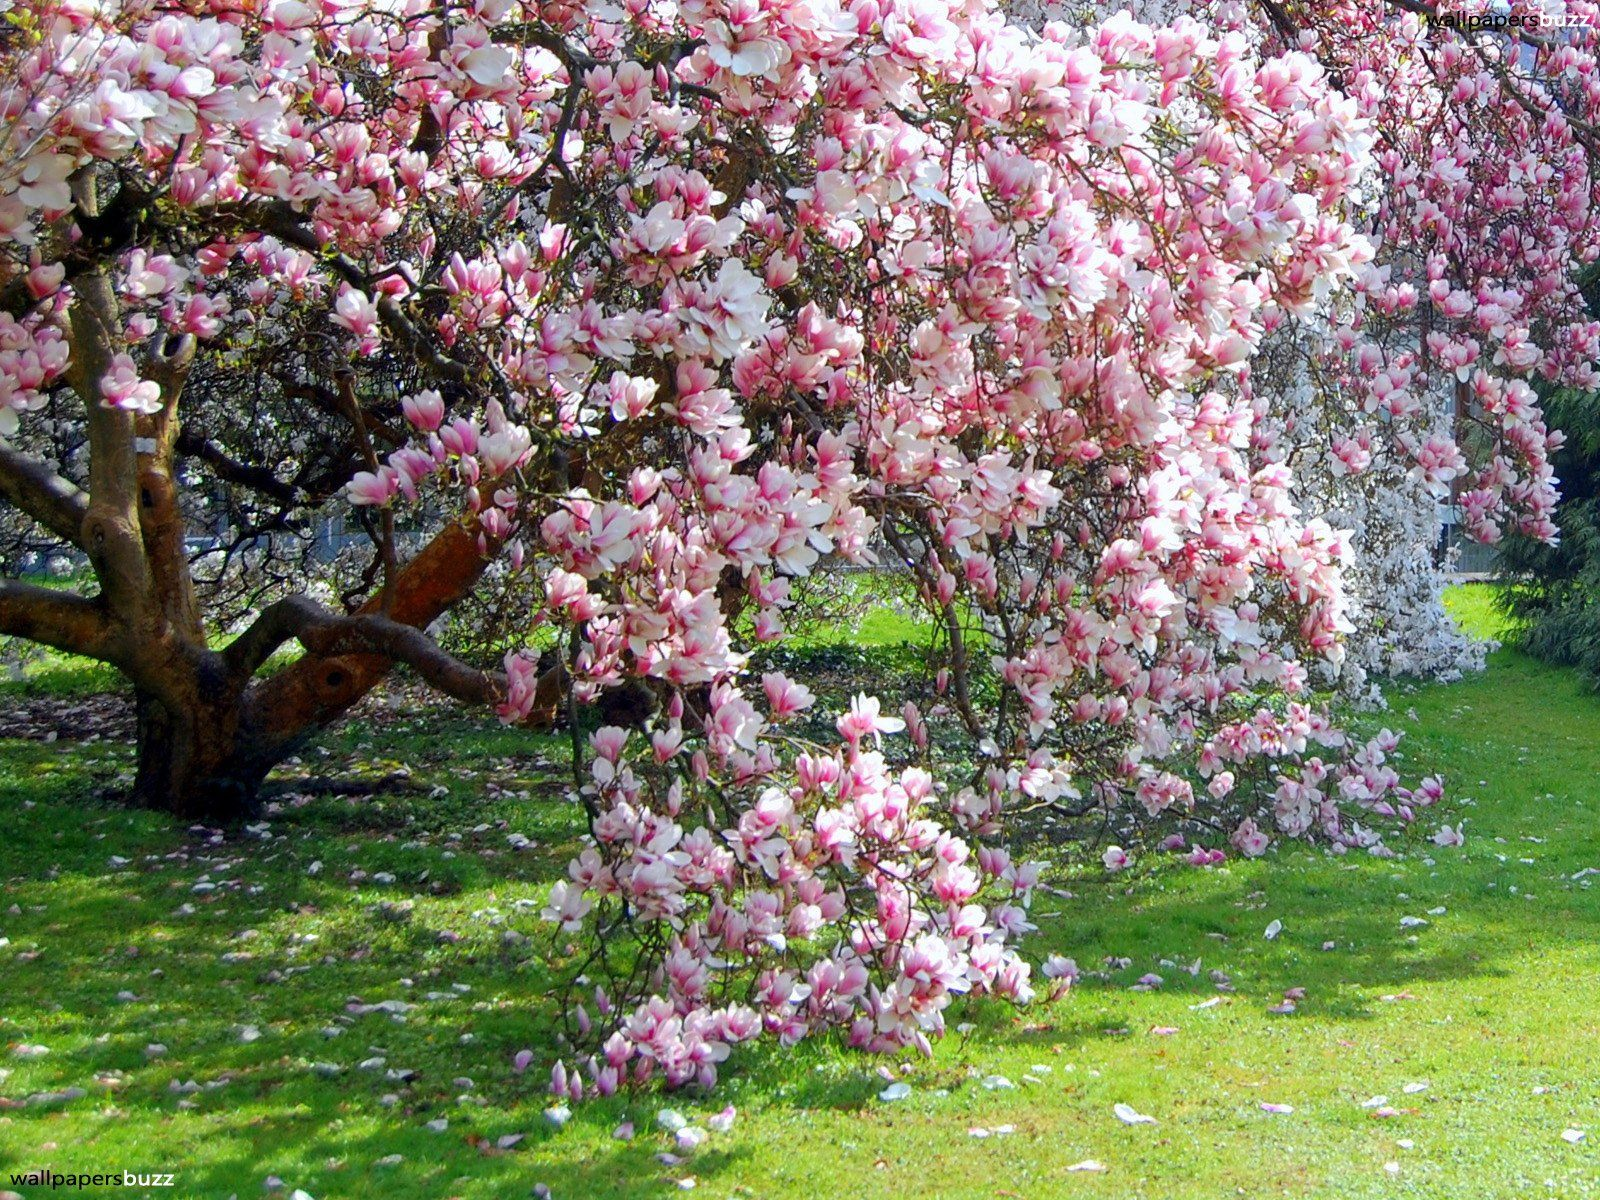 Flower Trees Pictures Flowering Trees Bushes Flowers Magnolias